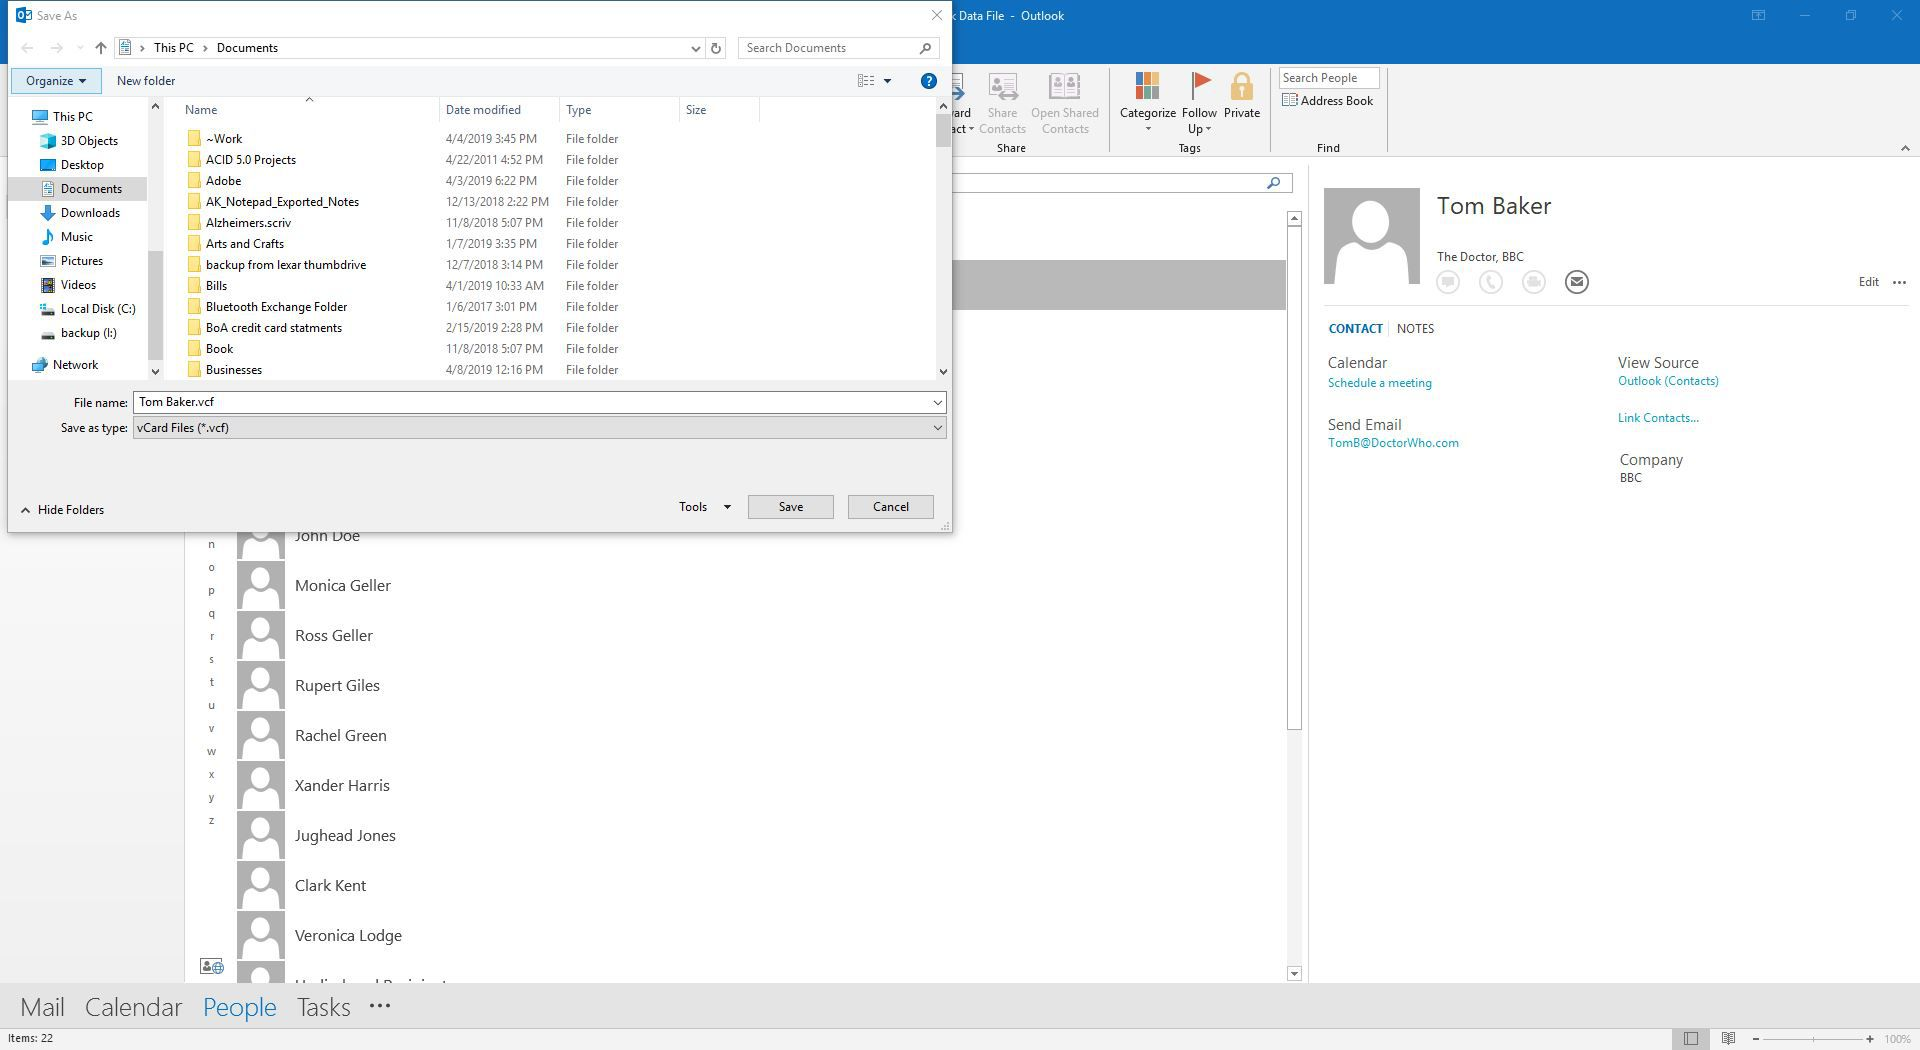 Saving a contact as a VCF file in Outlook